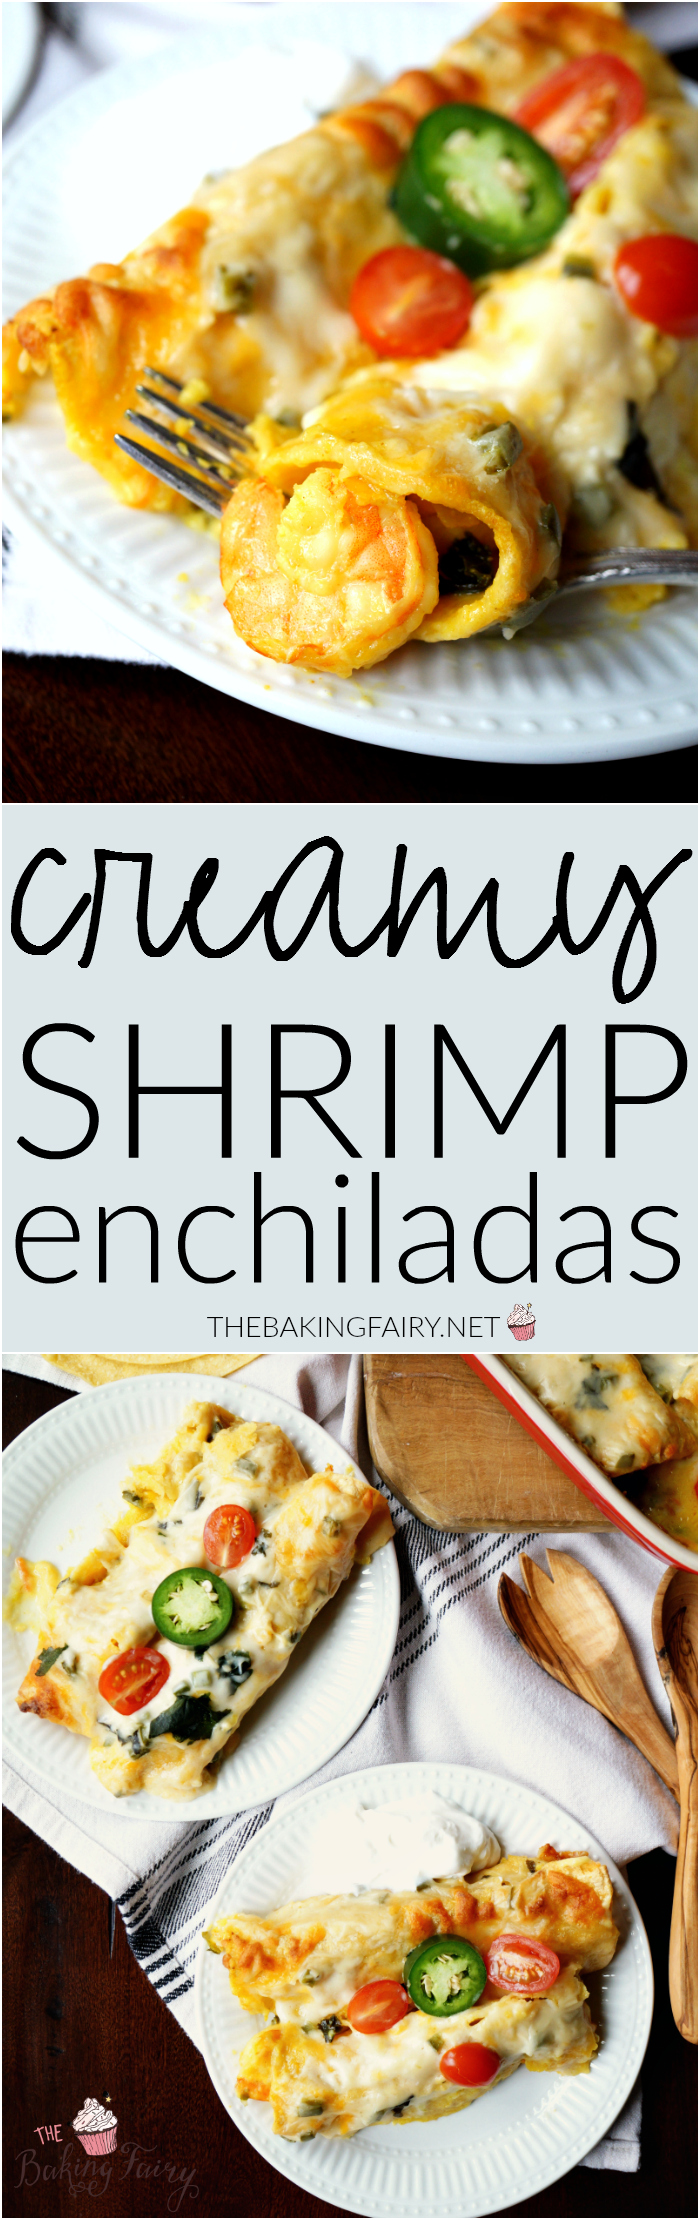 creamy shrimp enchiladas | The Baking Fairy